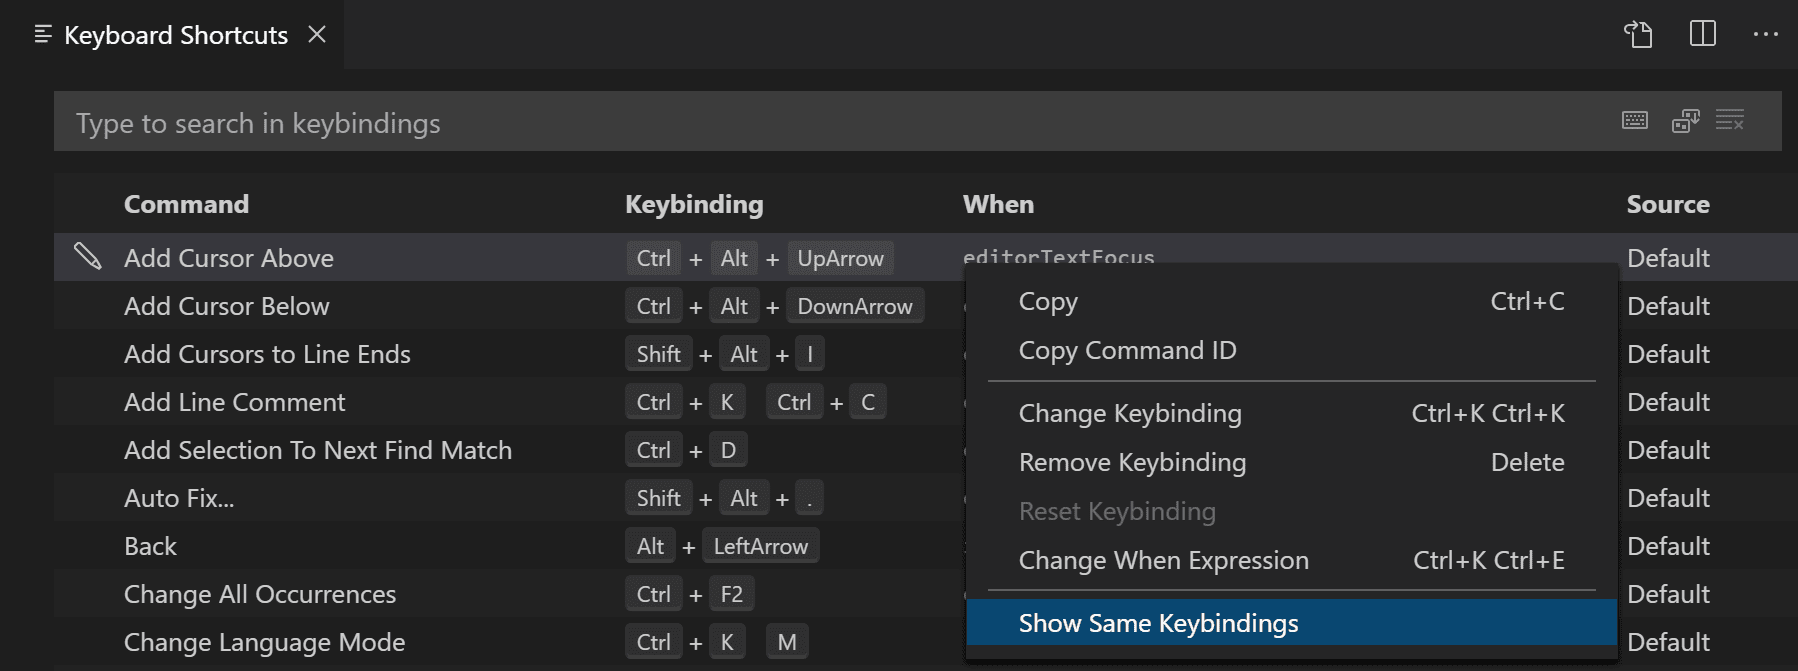 show keybinding conflicts menu